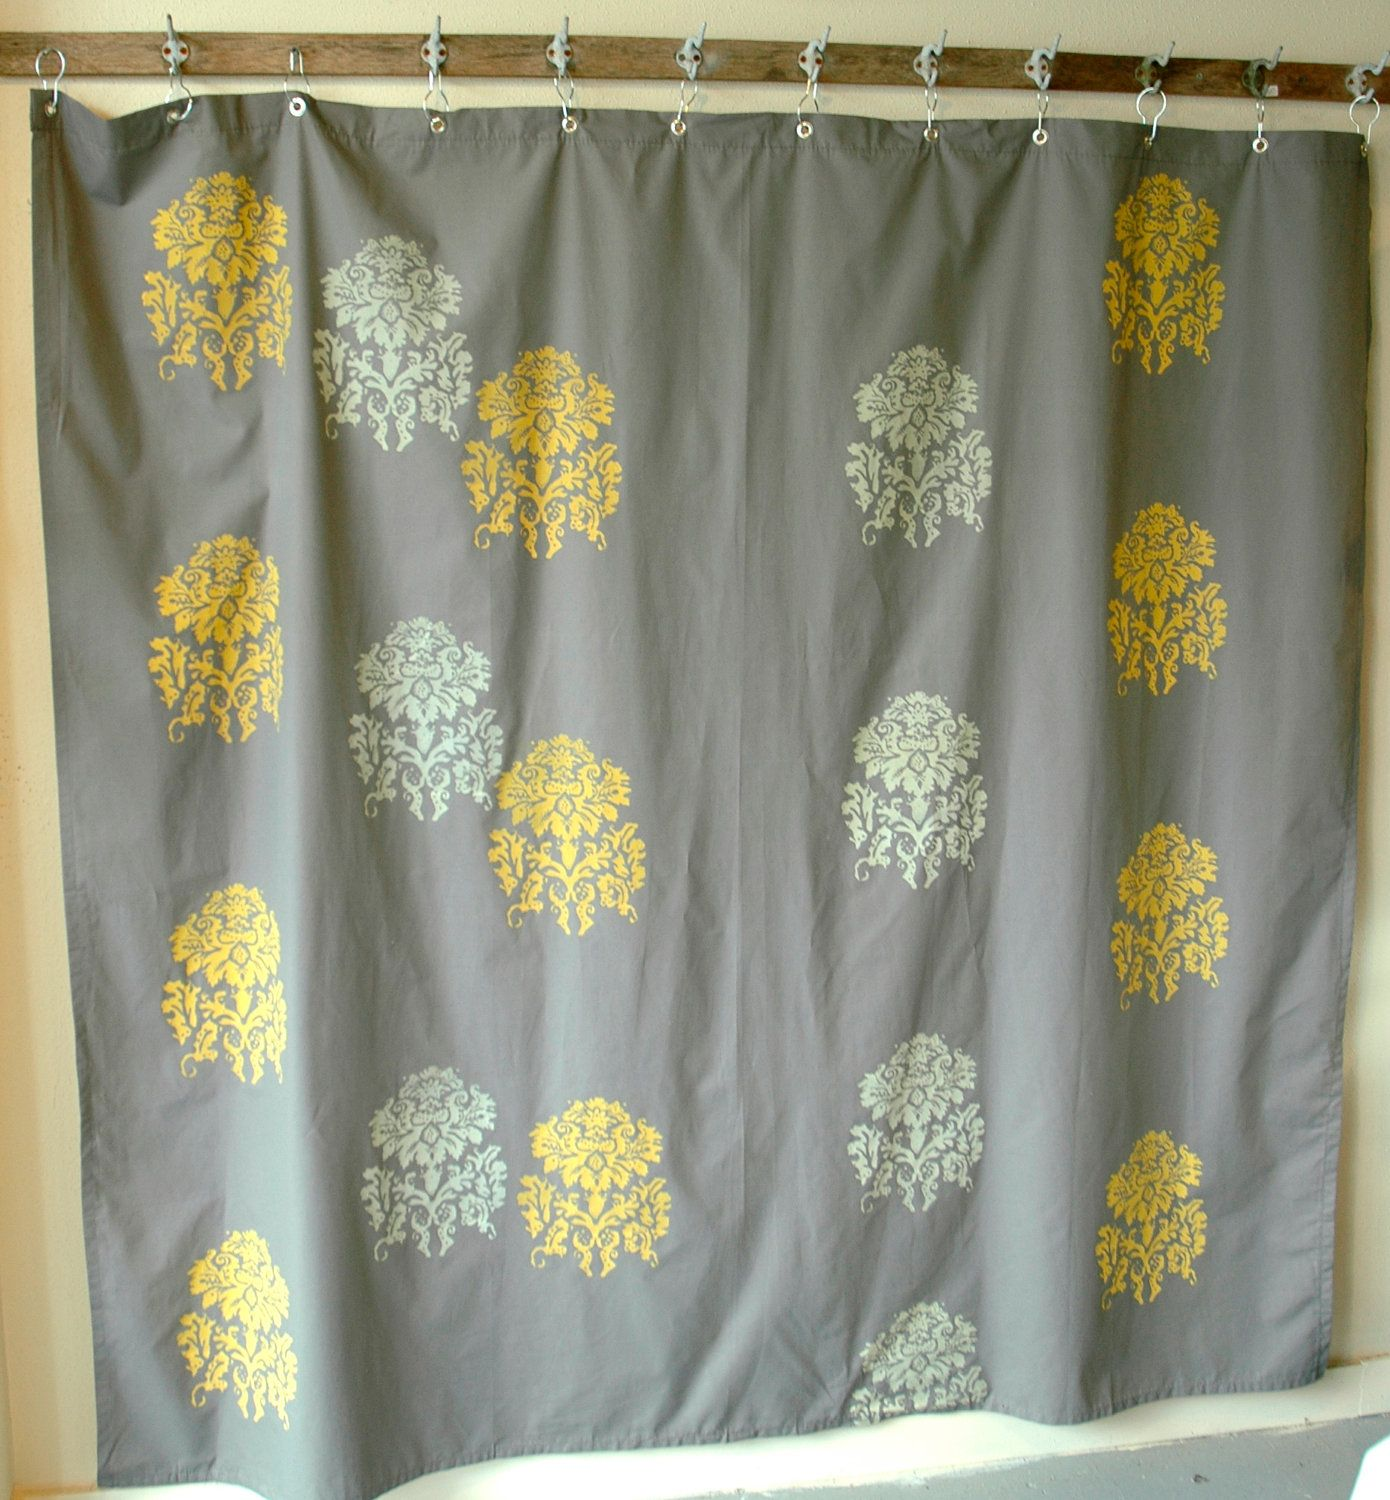 Shower curtaincharcoal grey with mantra print by appetitehome